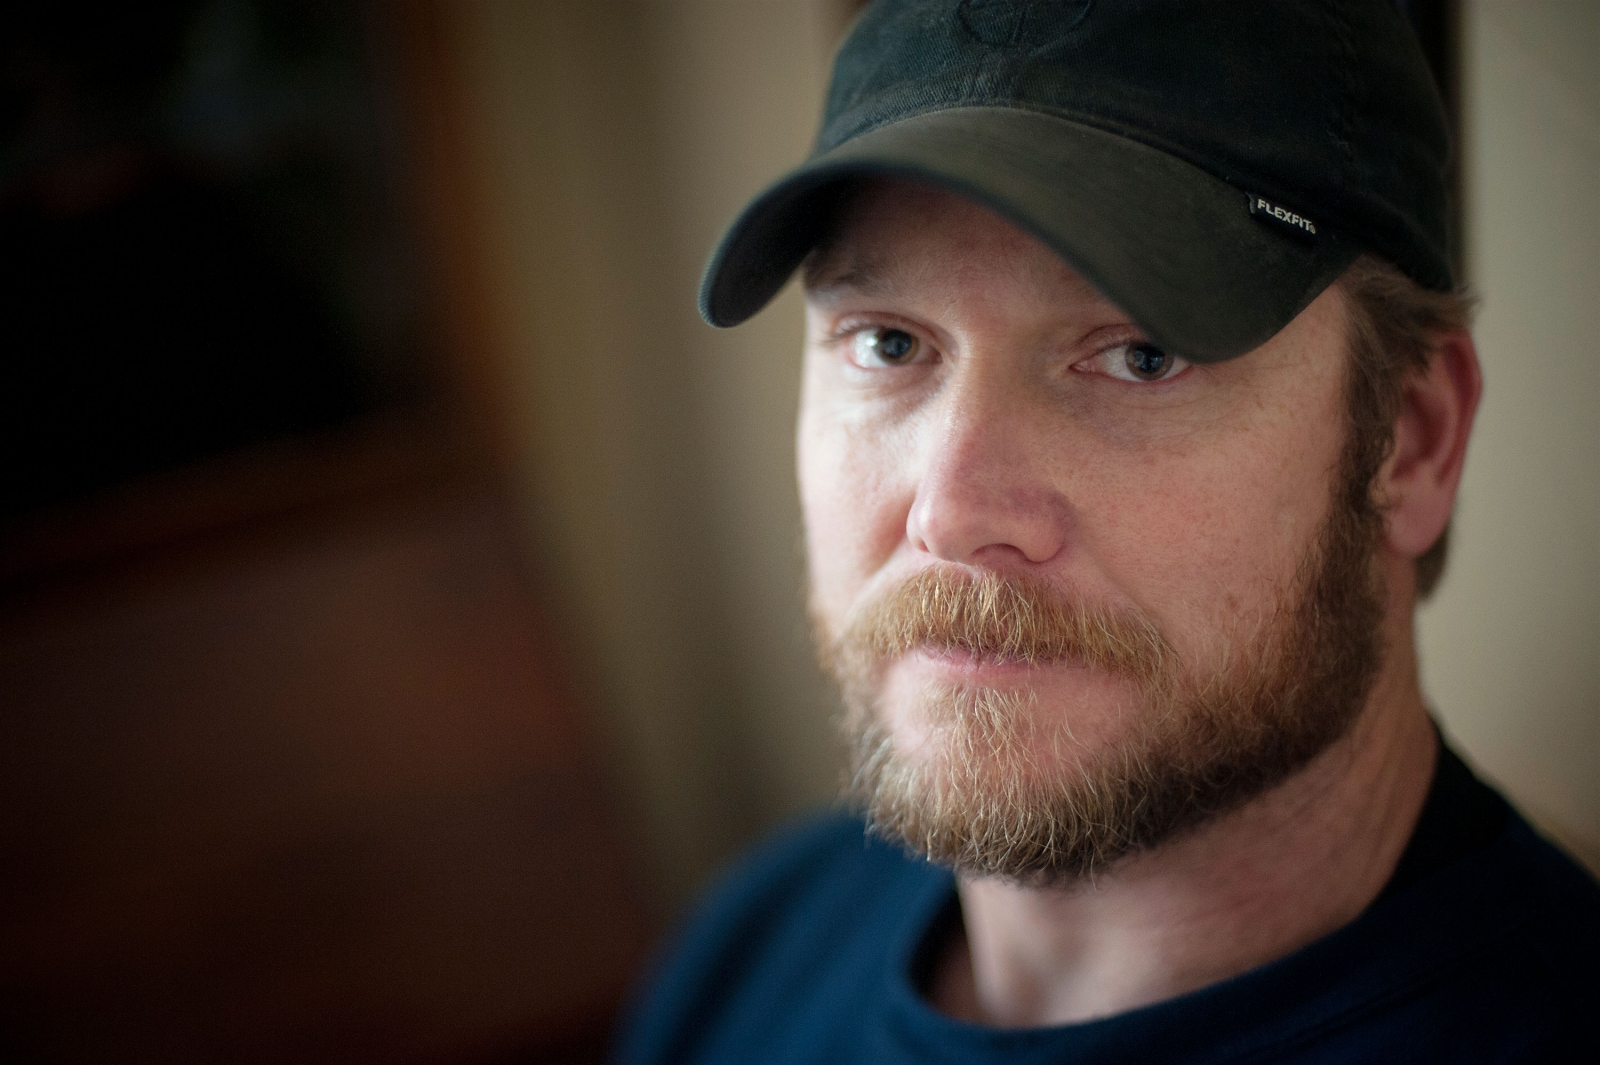 Jury selection starts in 'American Sniper' Texas murder trial